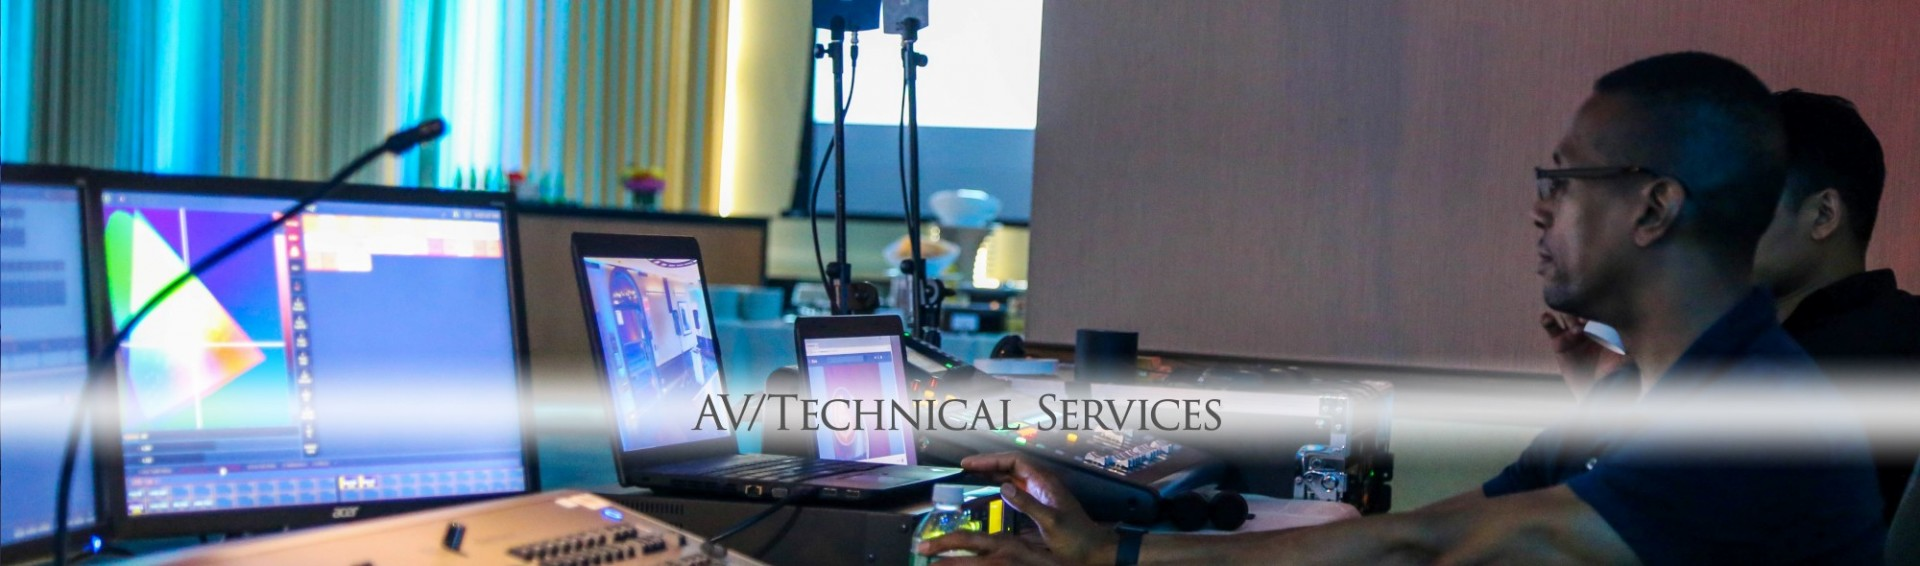 AV and Technical Services